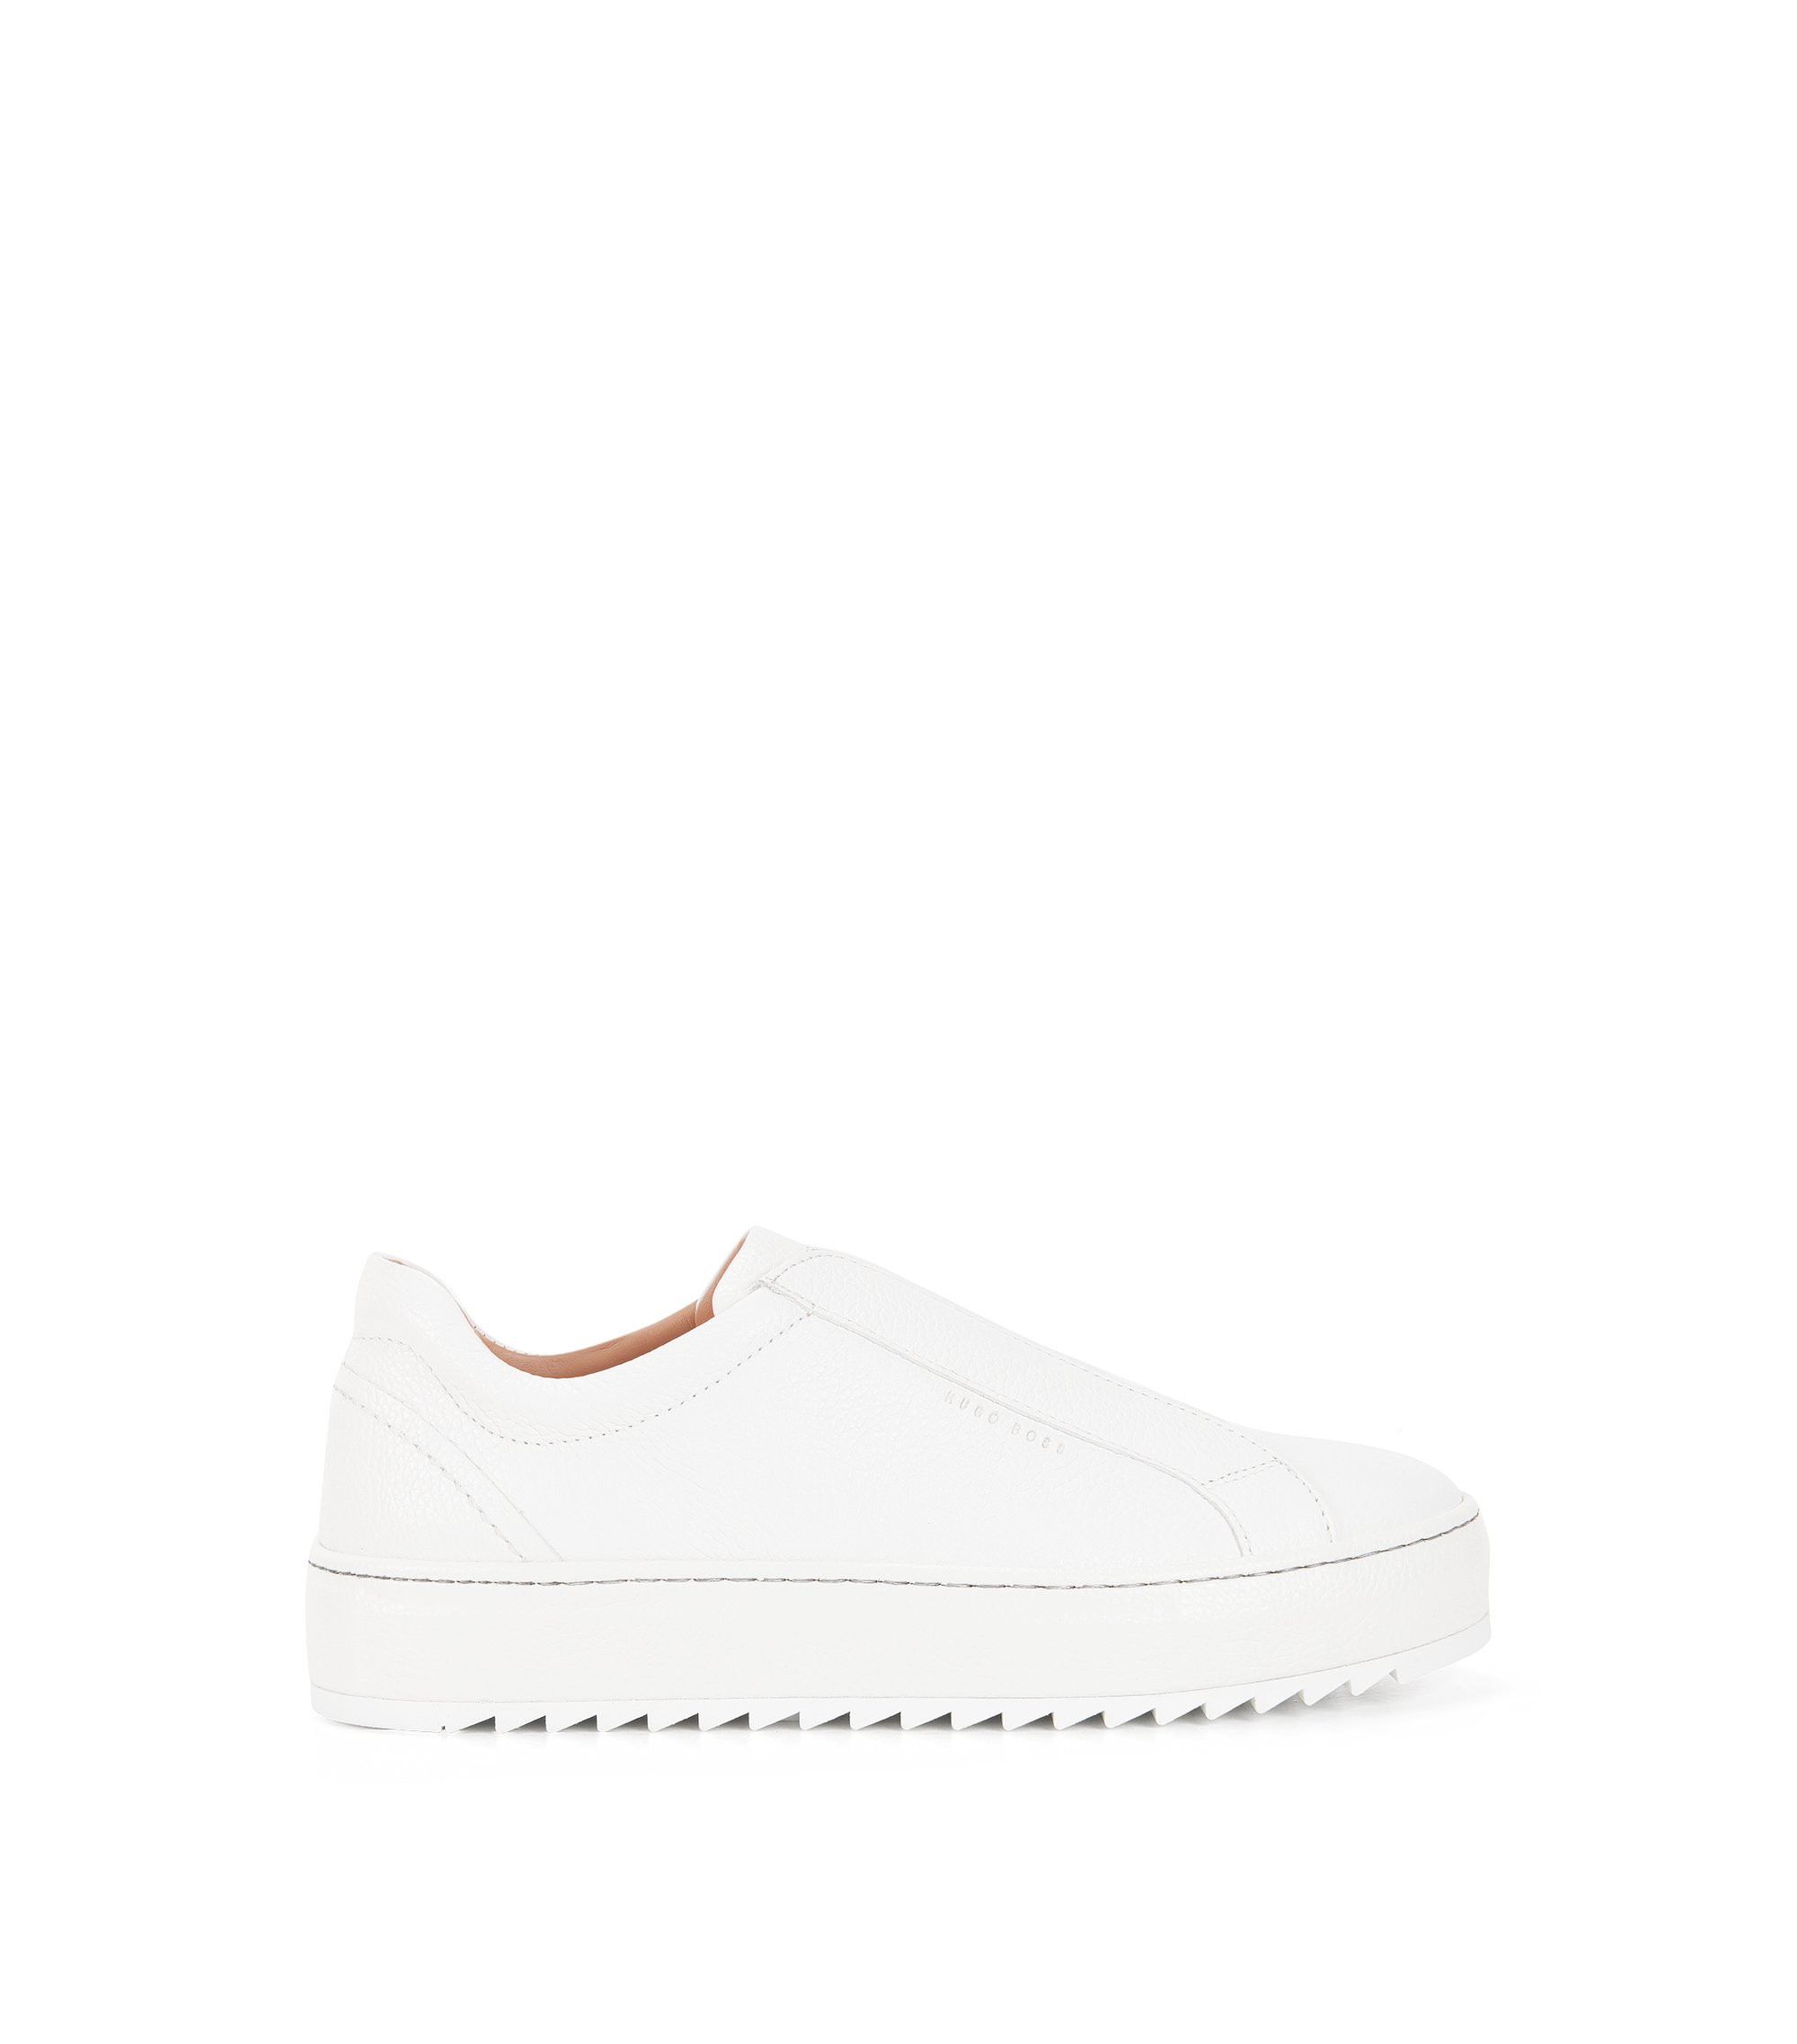 Sneakers low-top senza stringhe in pelle italiana, Bianco